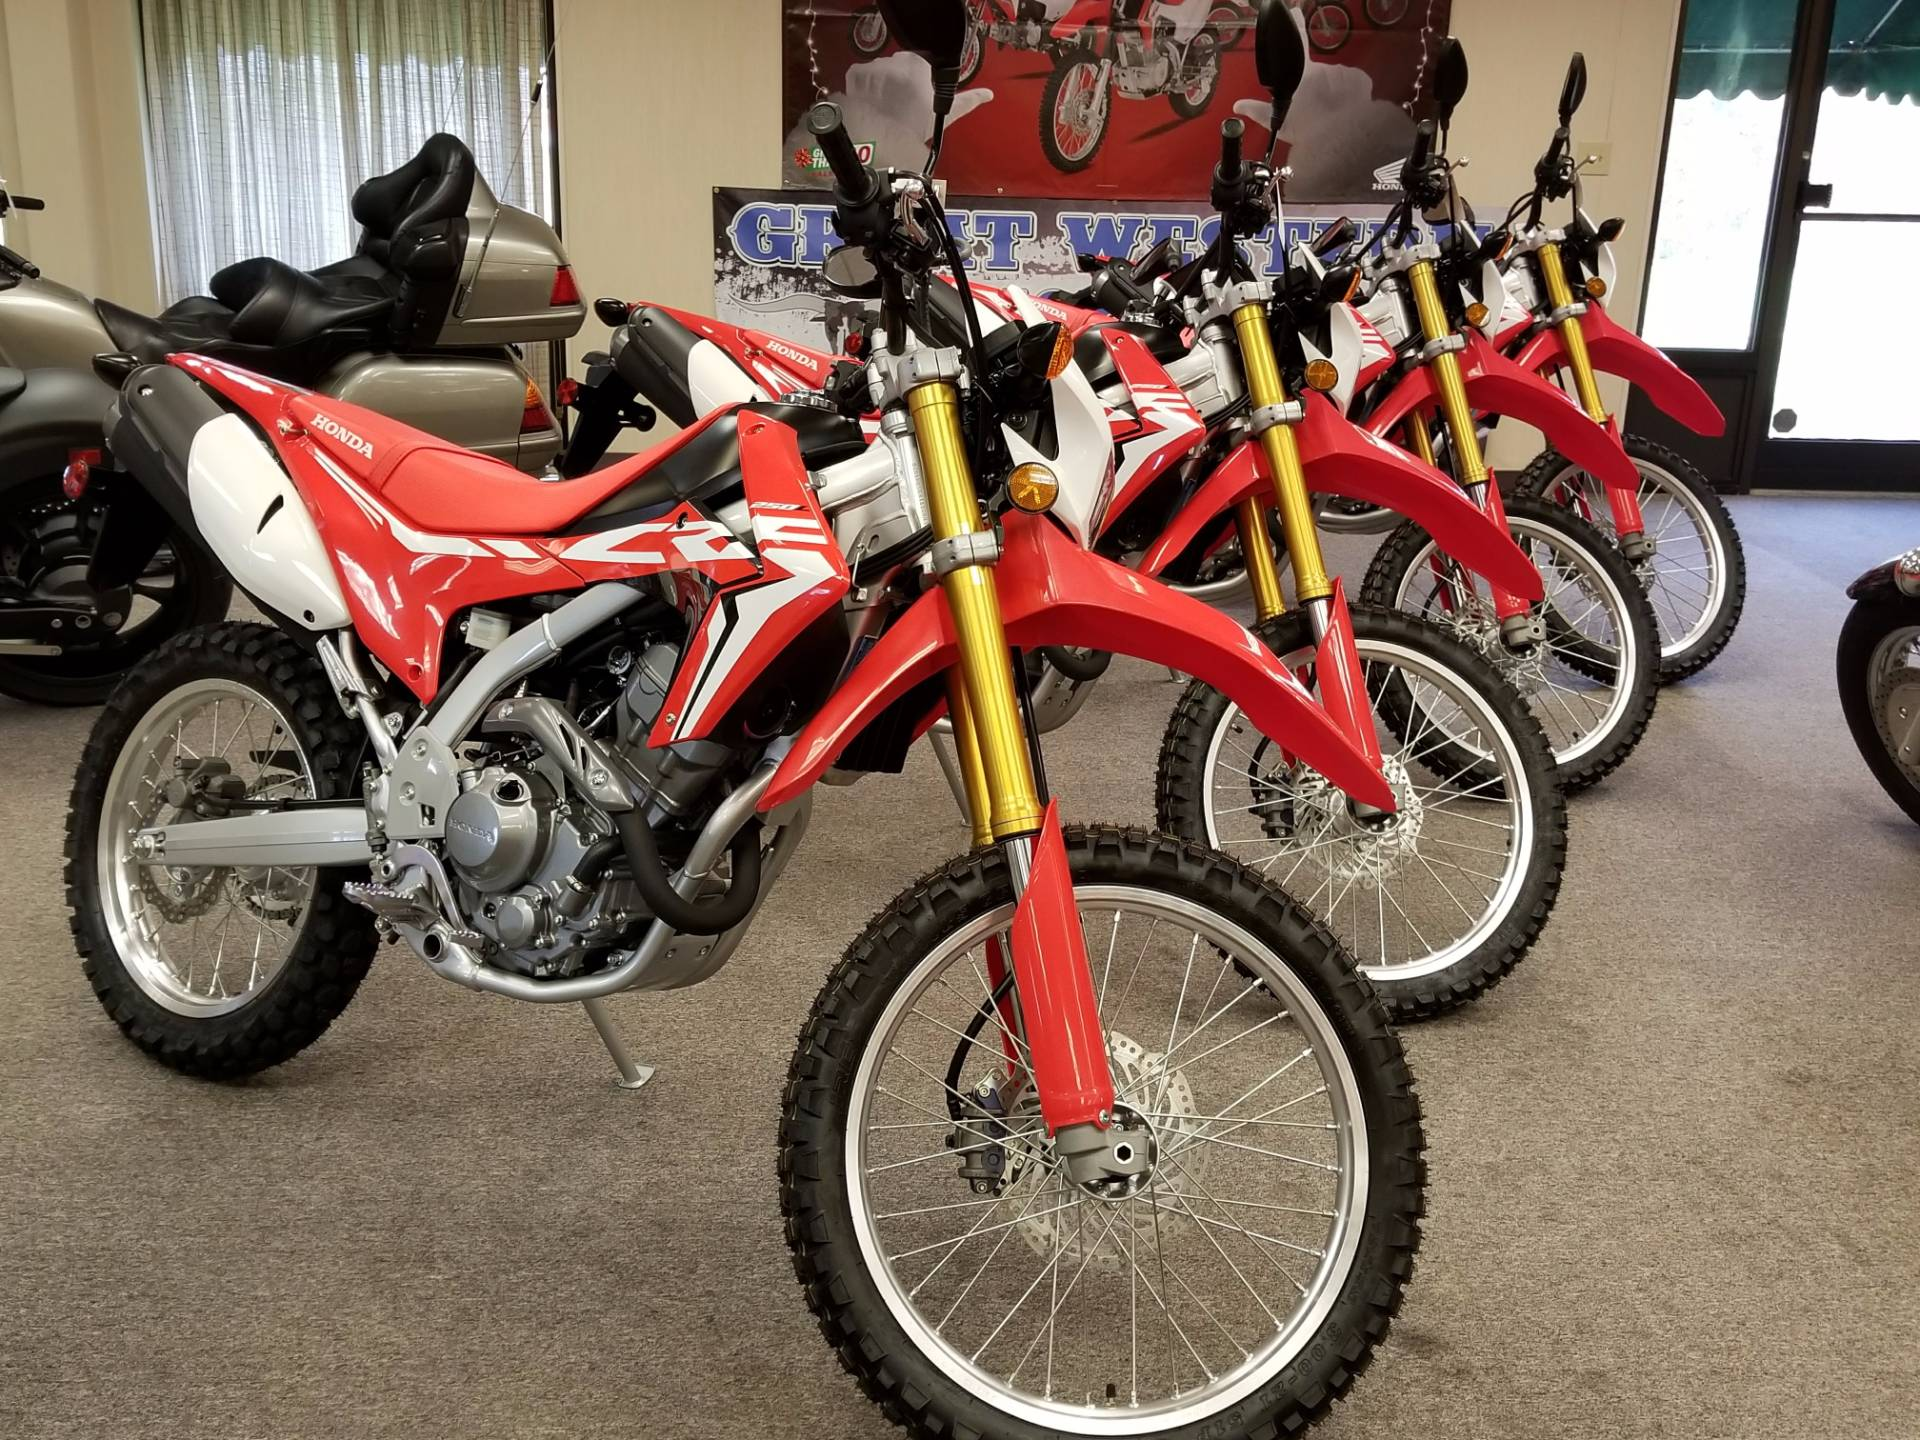 New 2018 Honda CRF450R Motorcycles in Statesville, NC | Stock Number ...